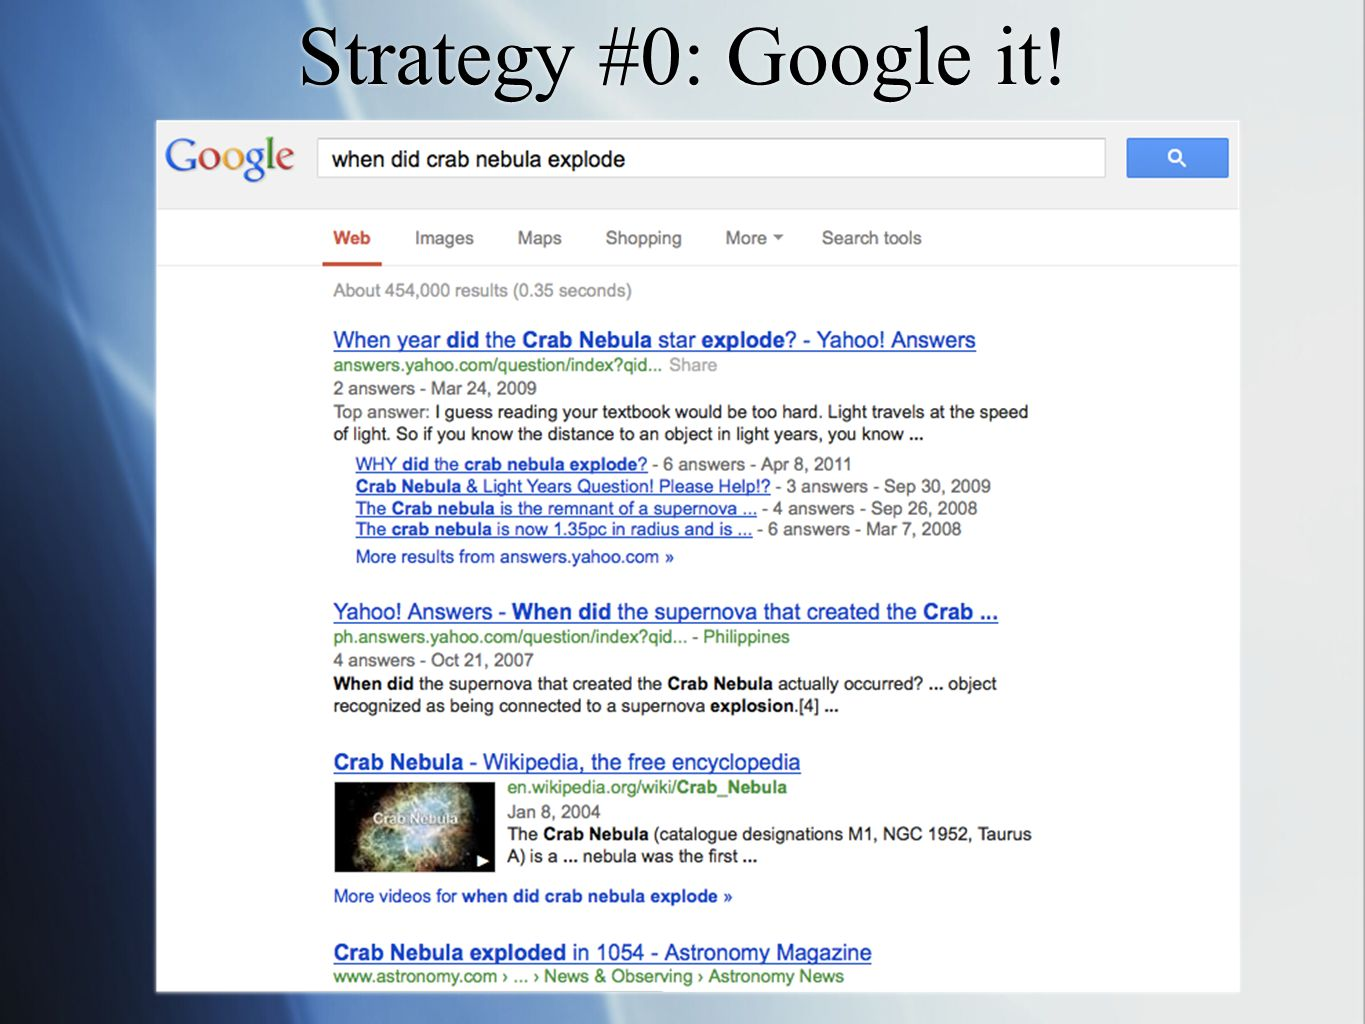 Strategy #0: Google it!